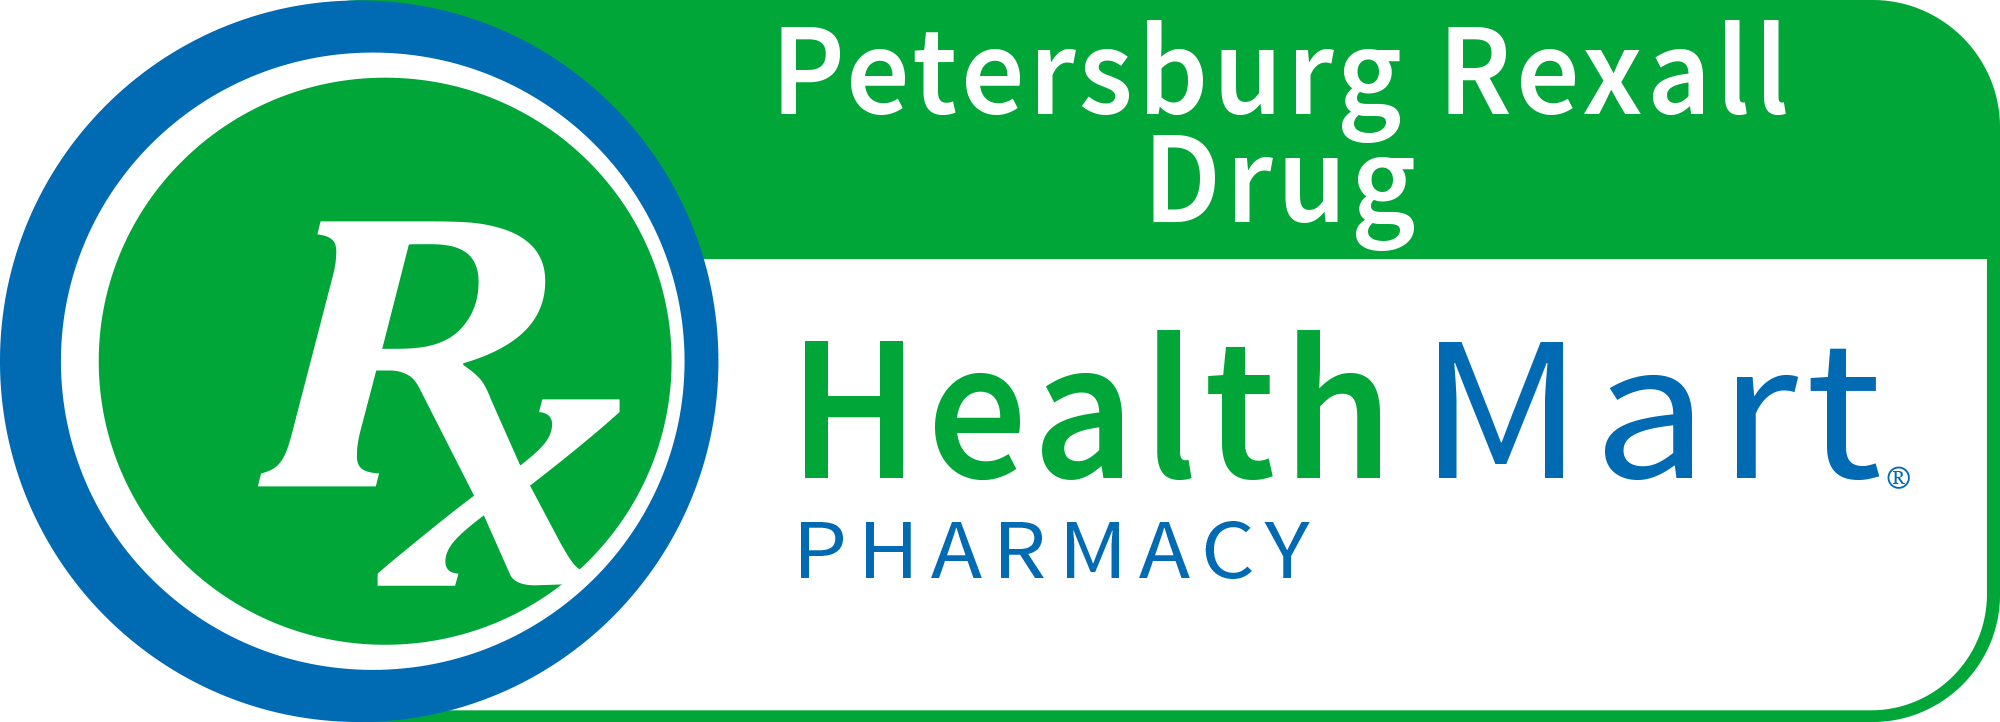 New - Petersburg Rexall Drug Inc